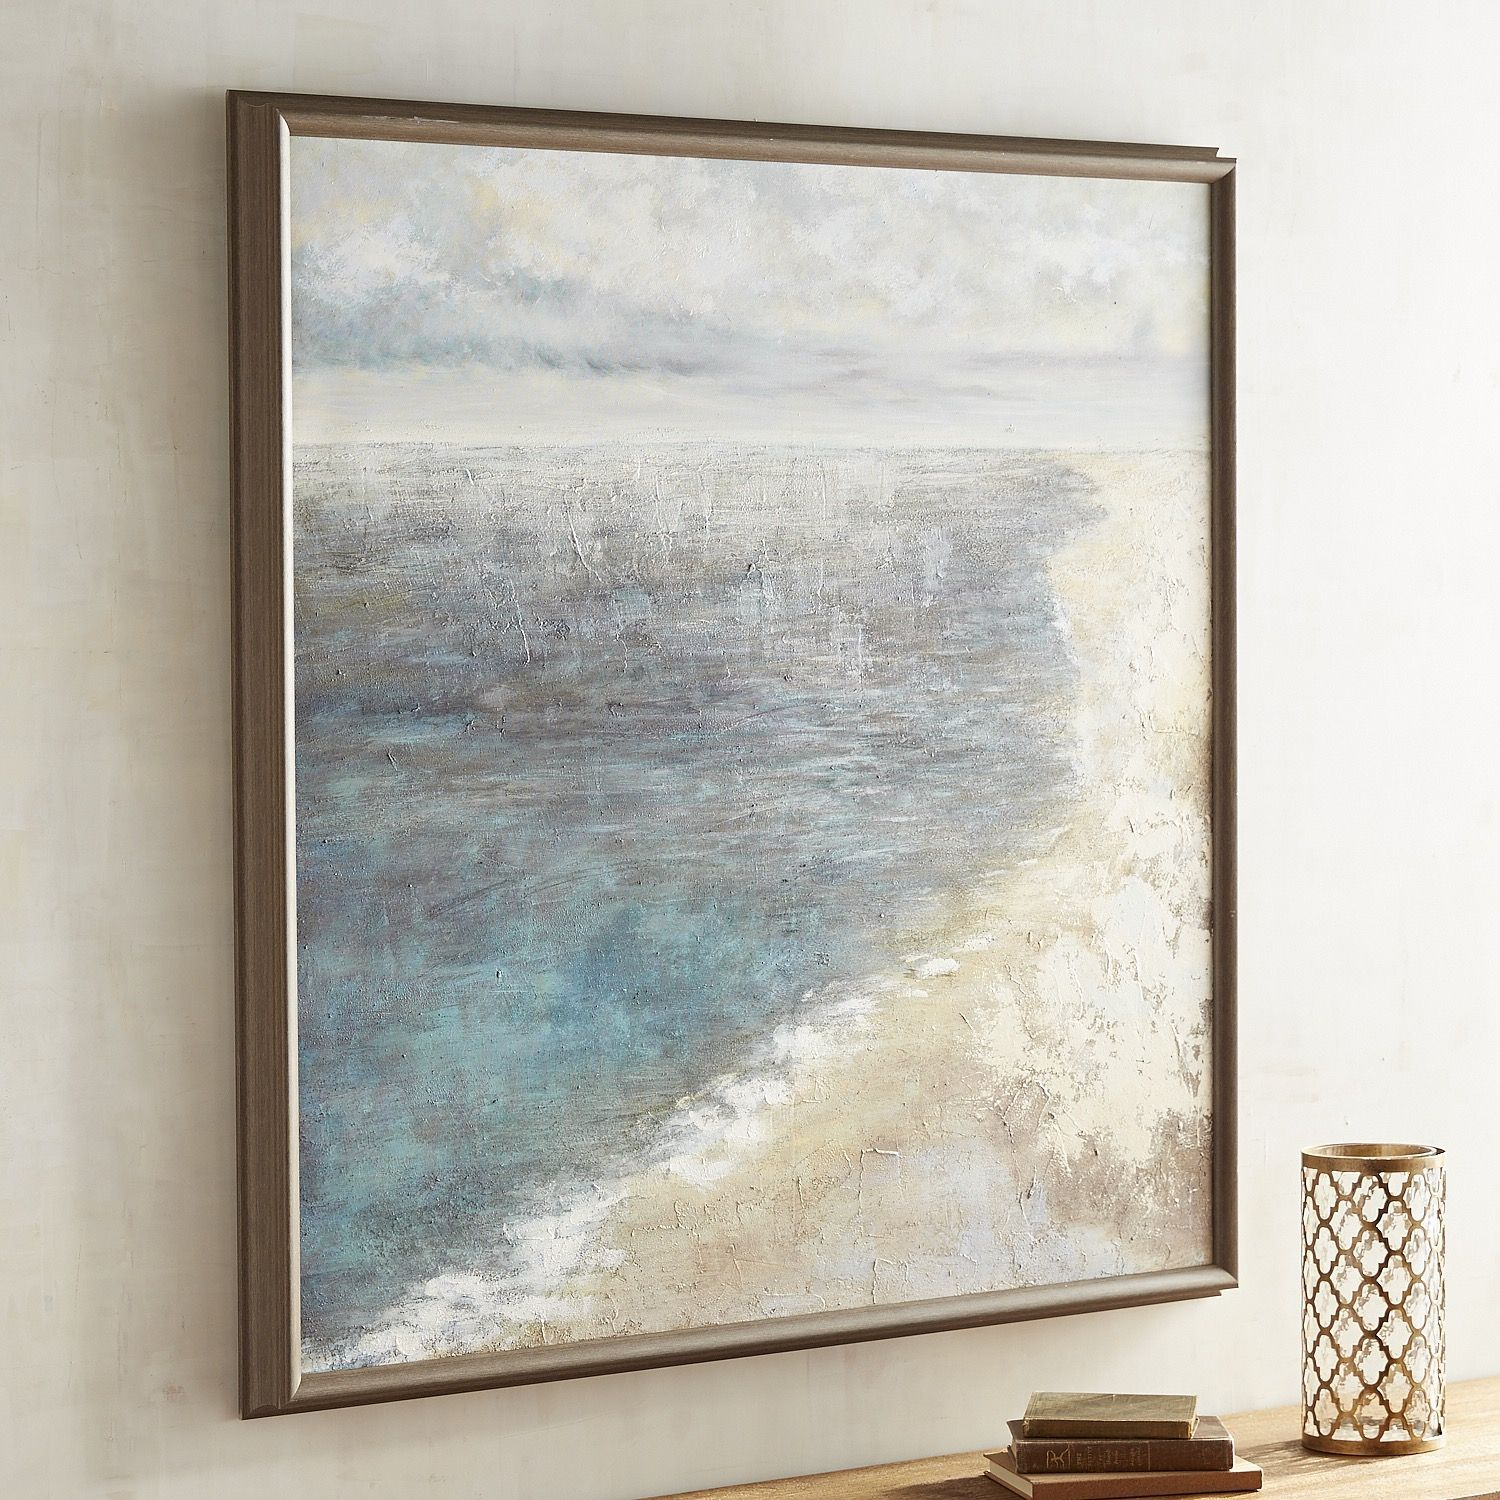 Shore framed art products